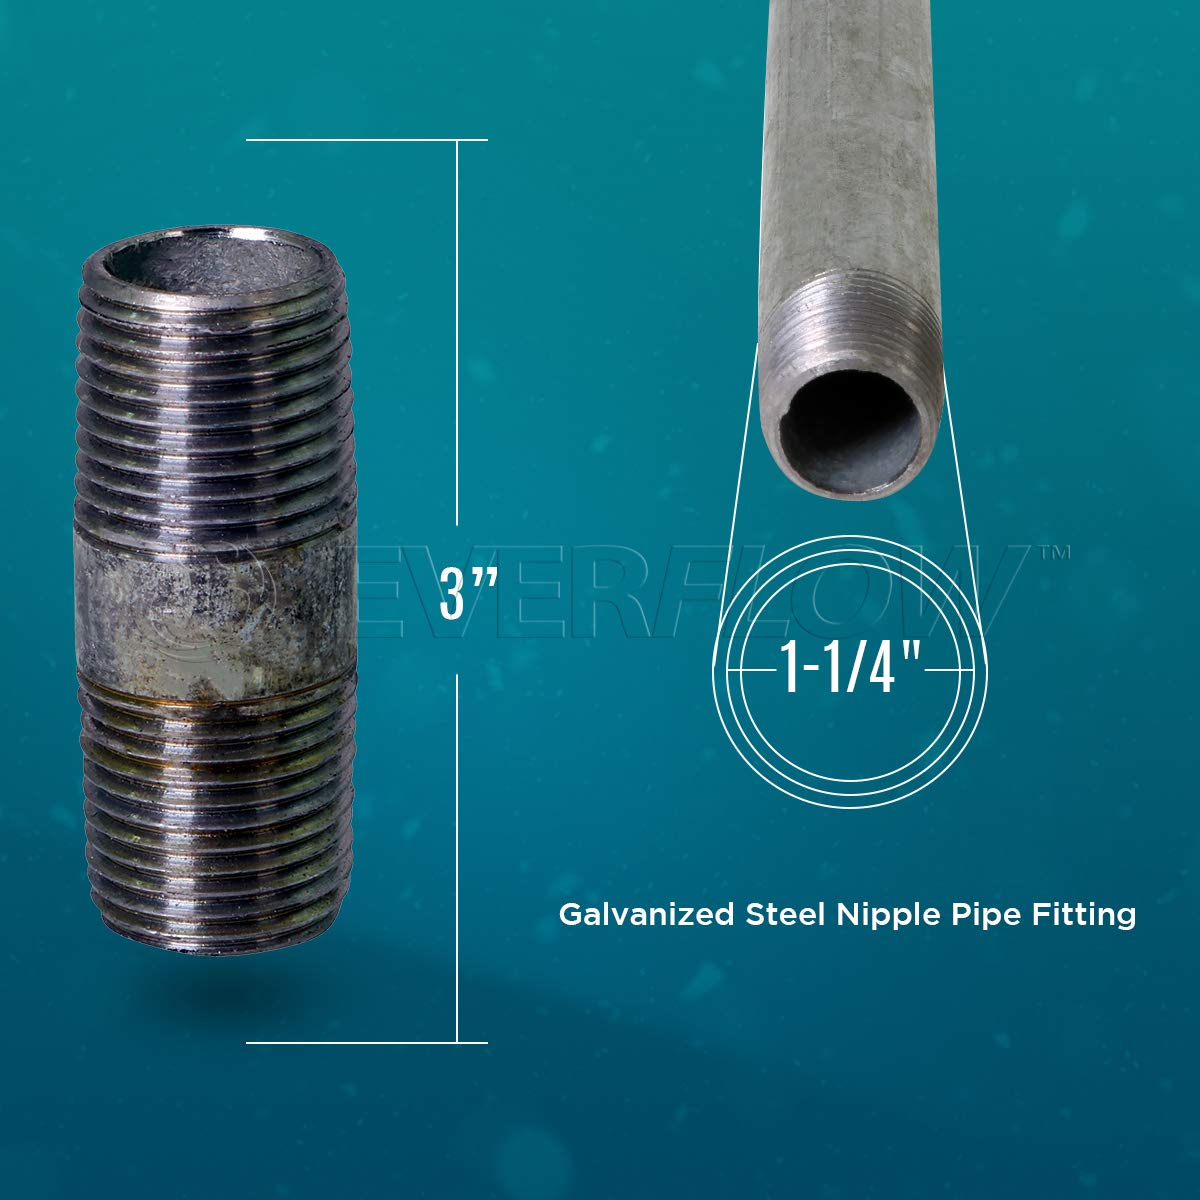 Pack of 10 Pre Cut Industrial Steel Nipple Pipe Everflow NPGL1135-10 Used To Build DIY Furniture Galvanized Connectors Threaded Pipes and Fittings 1-1//4 x 3-1//2